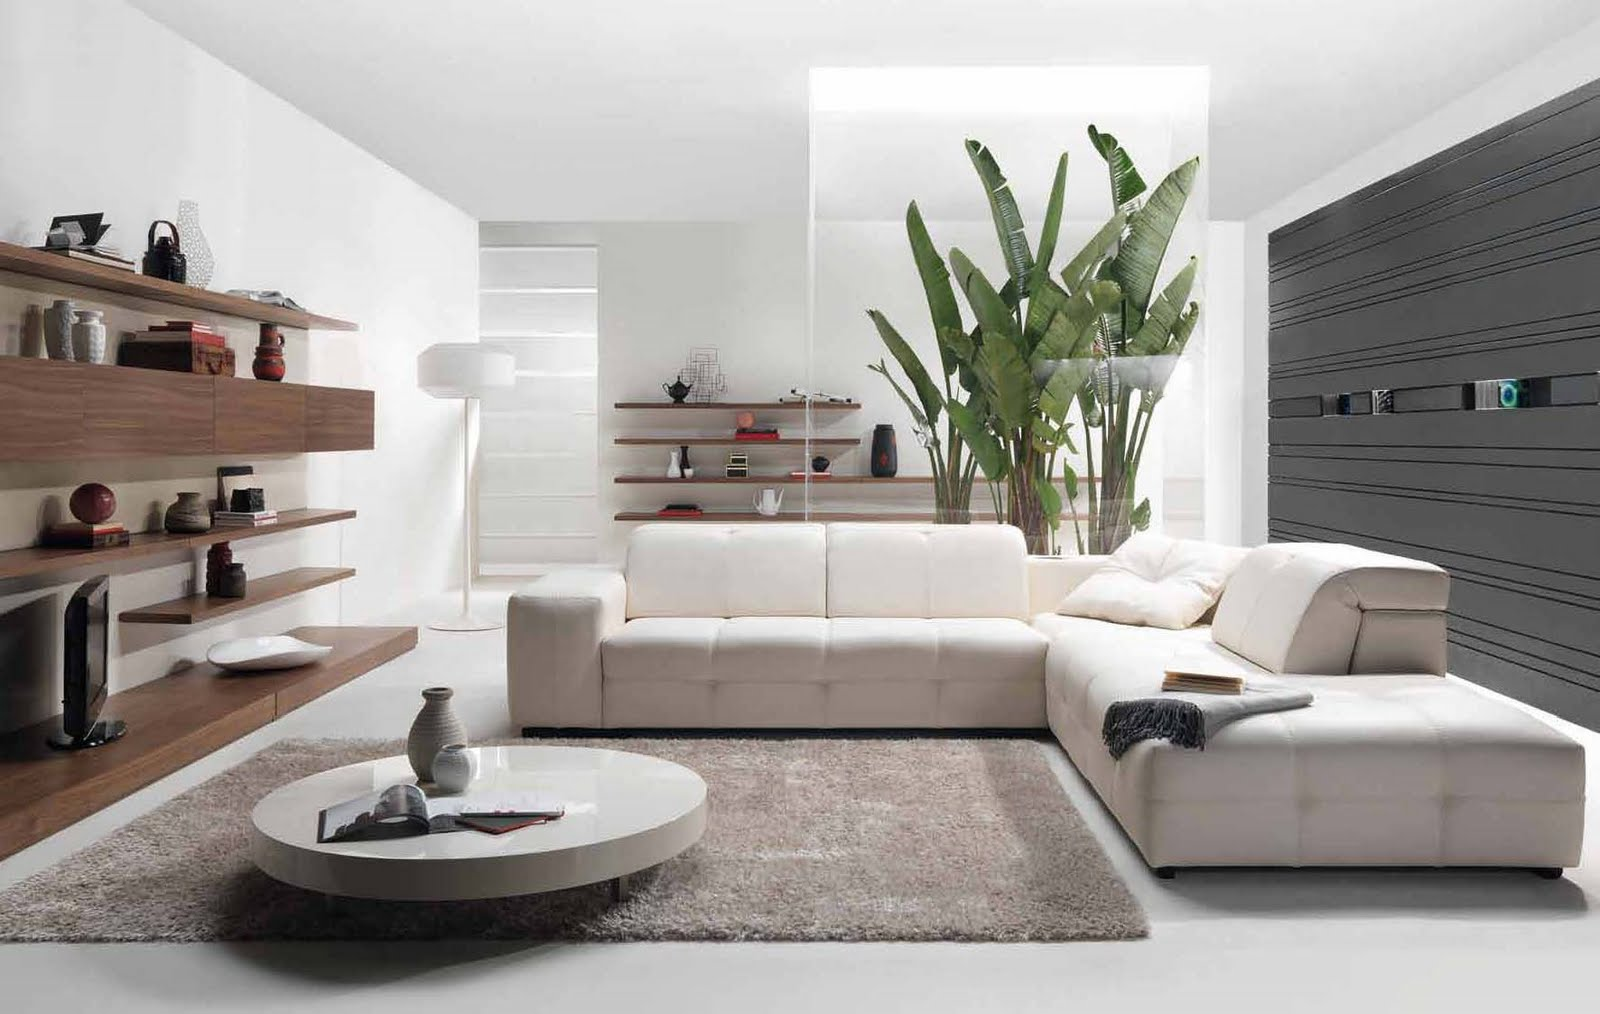 Future house design modern living room interior design styles 2010 by natuzzi - Interior design living room modern ...